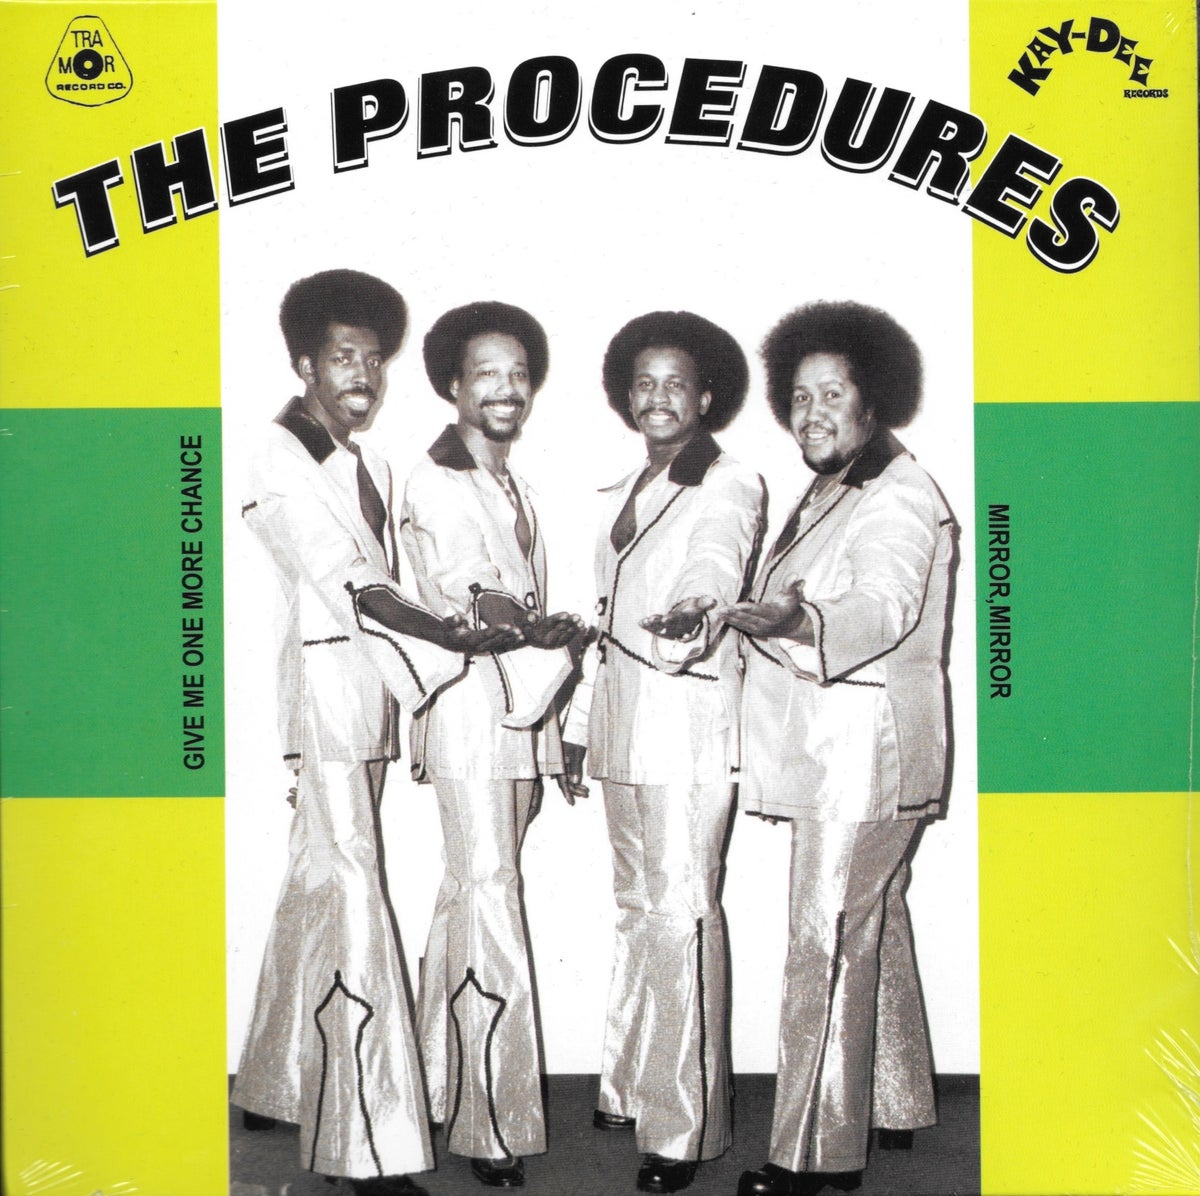 Kd 036 037 the procedures kay dee records for Kenny motors morris il